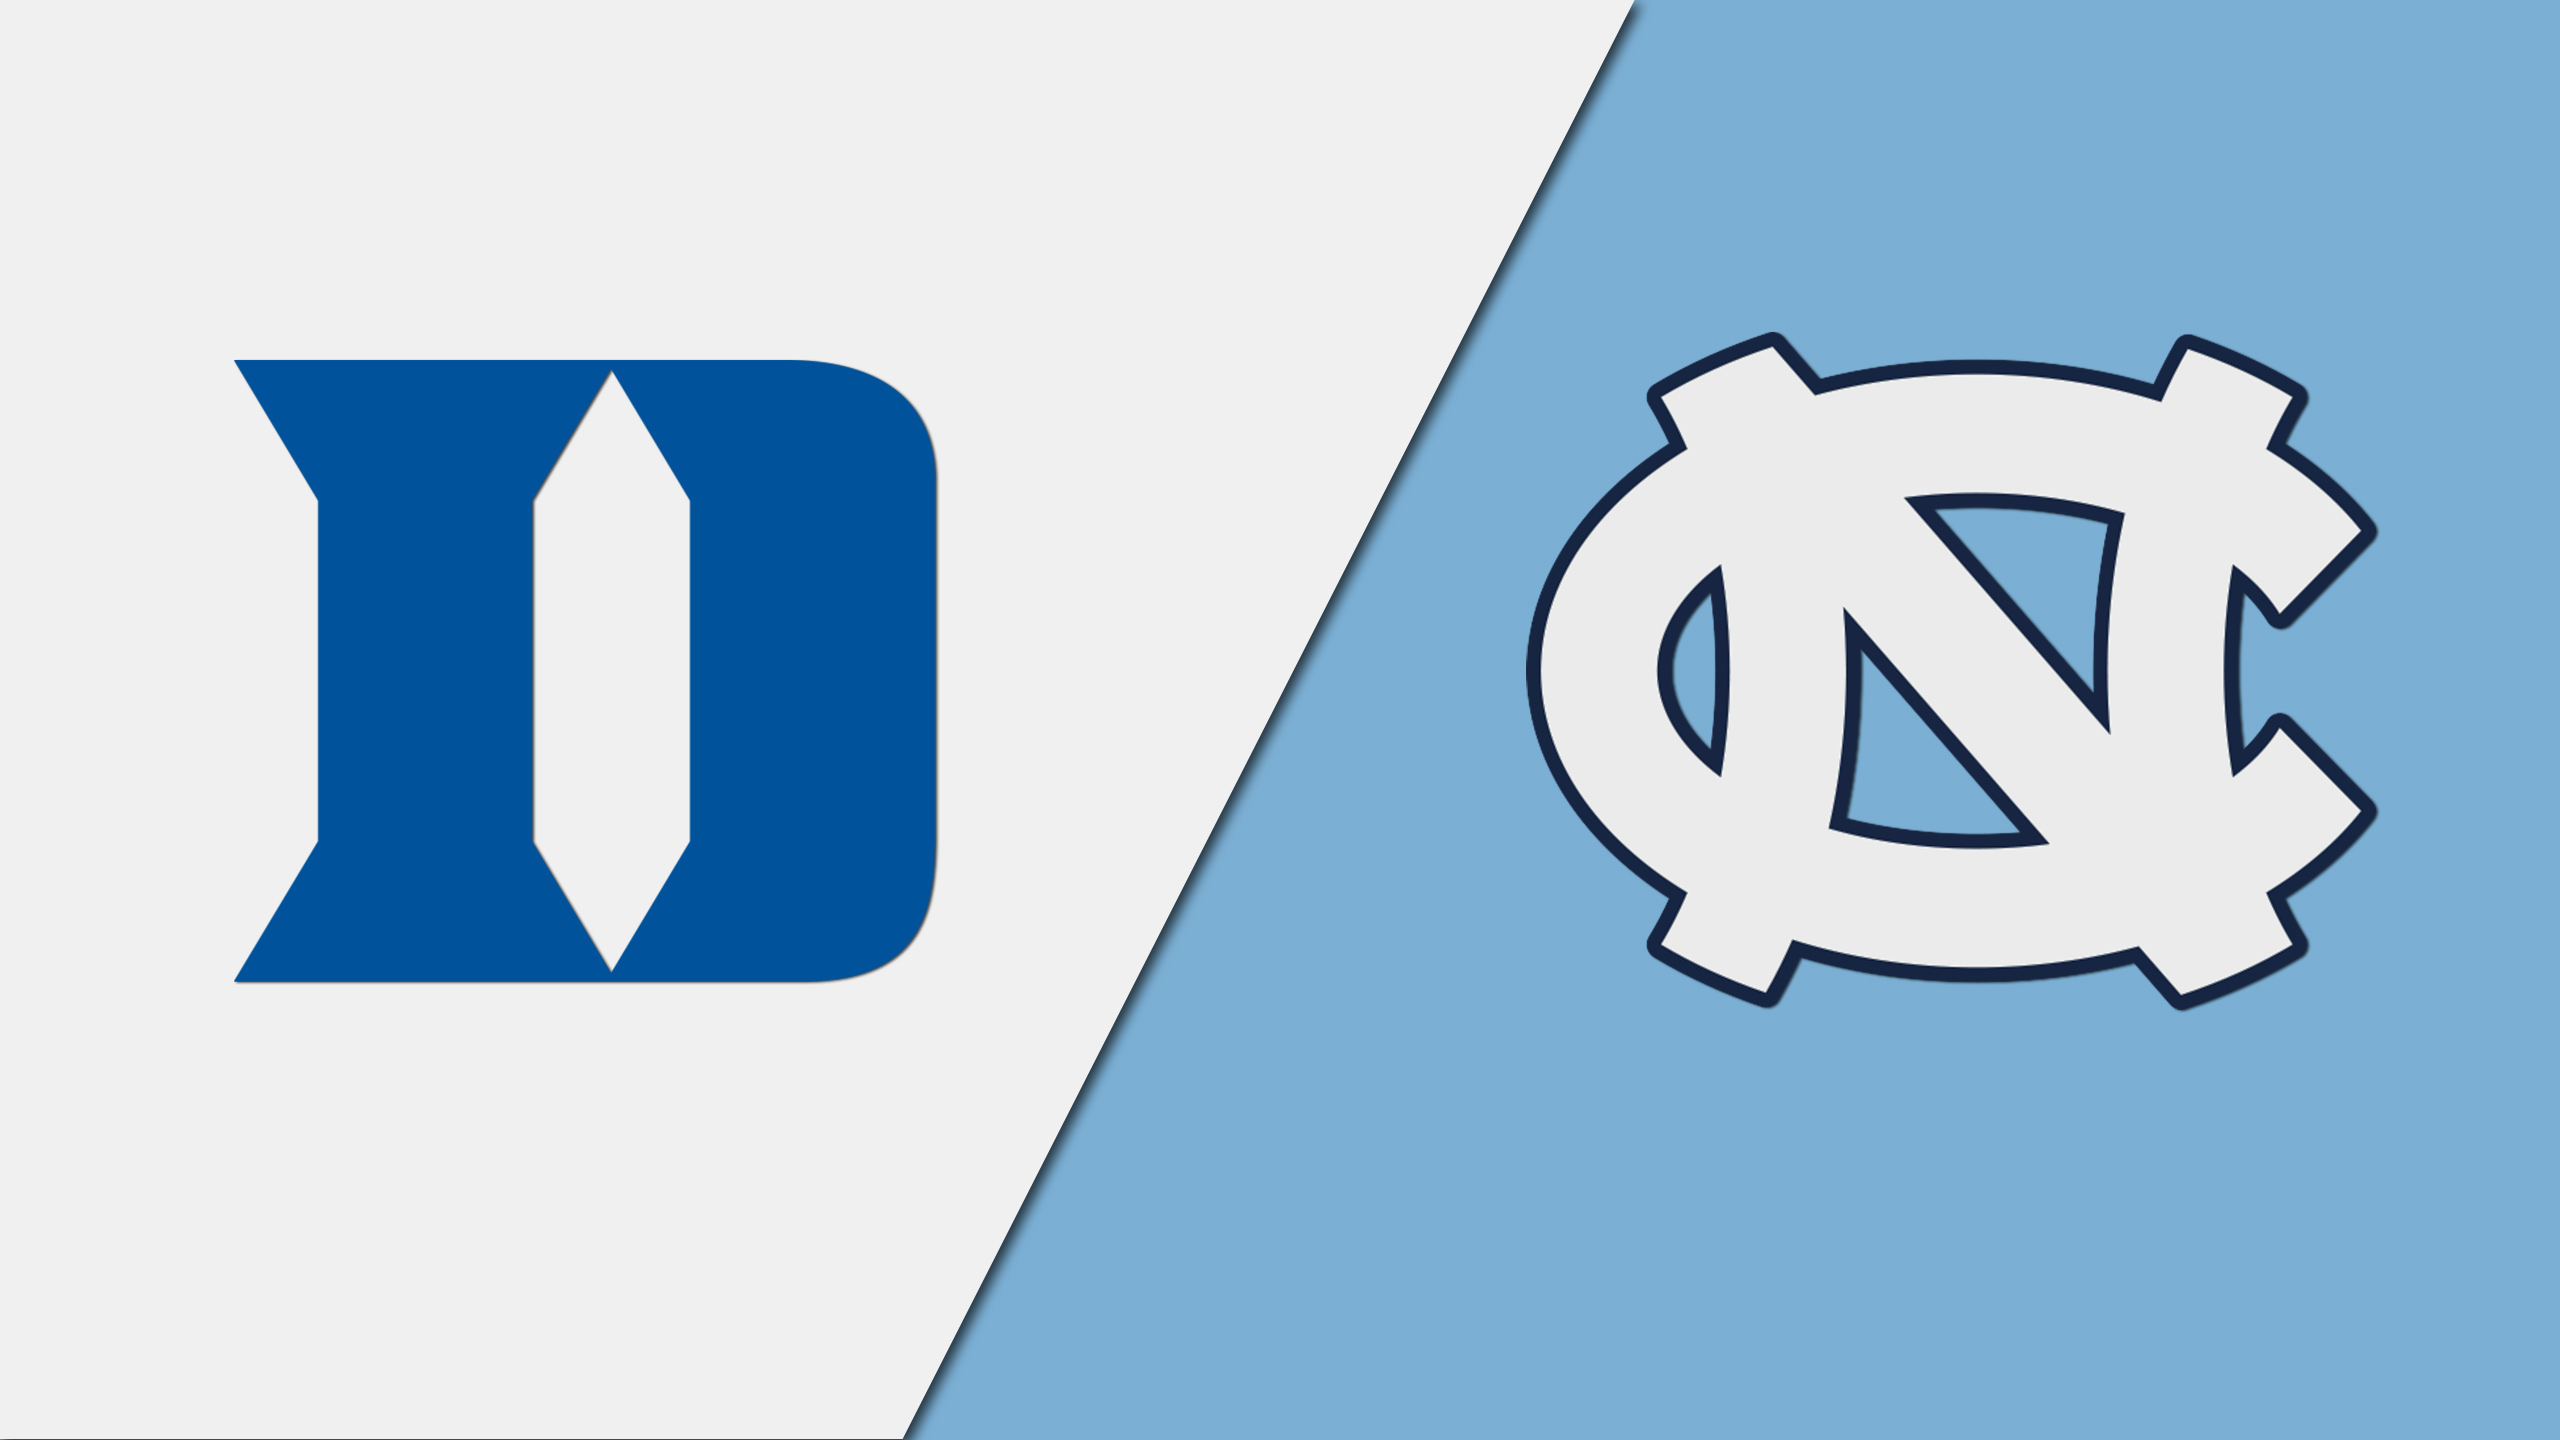 #14 Duke vs. #6 North Carolina (Semifinal #1) (re-air)